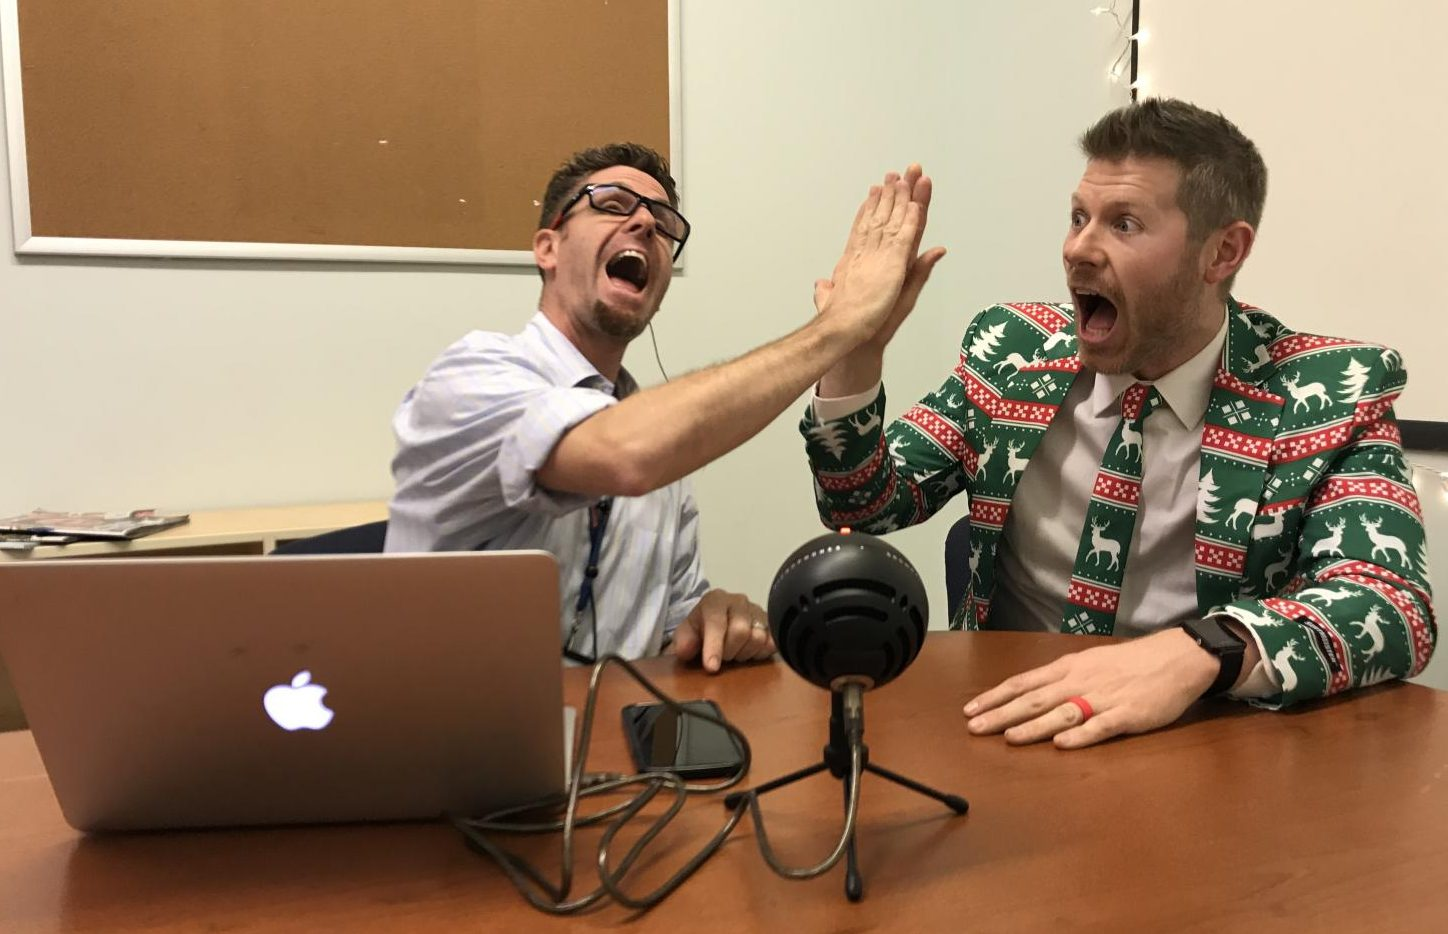 Assistant principal Steve Orders and science teacher Matt Johnson in their recording studio